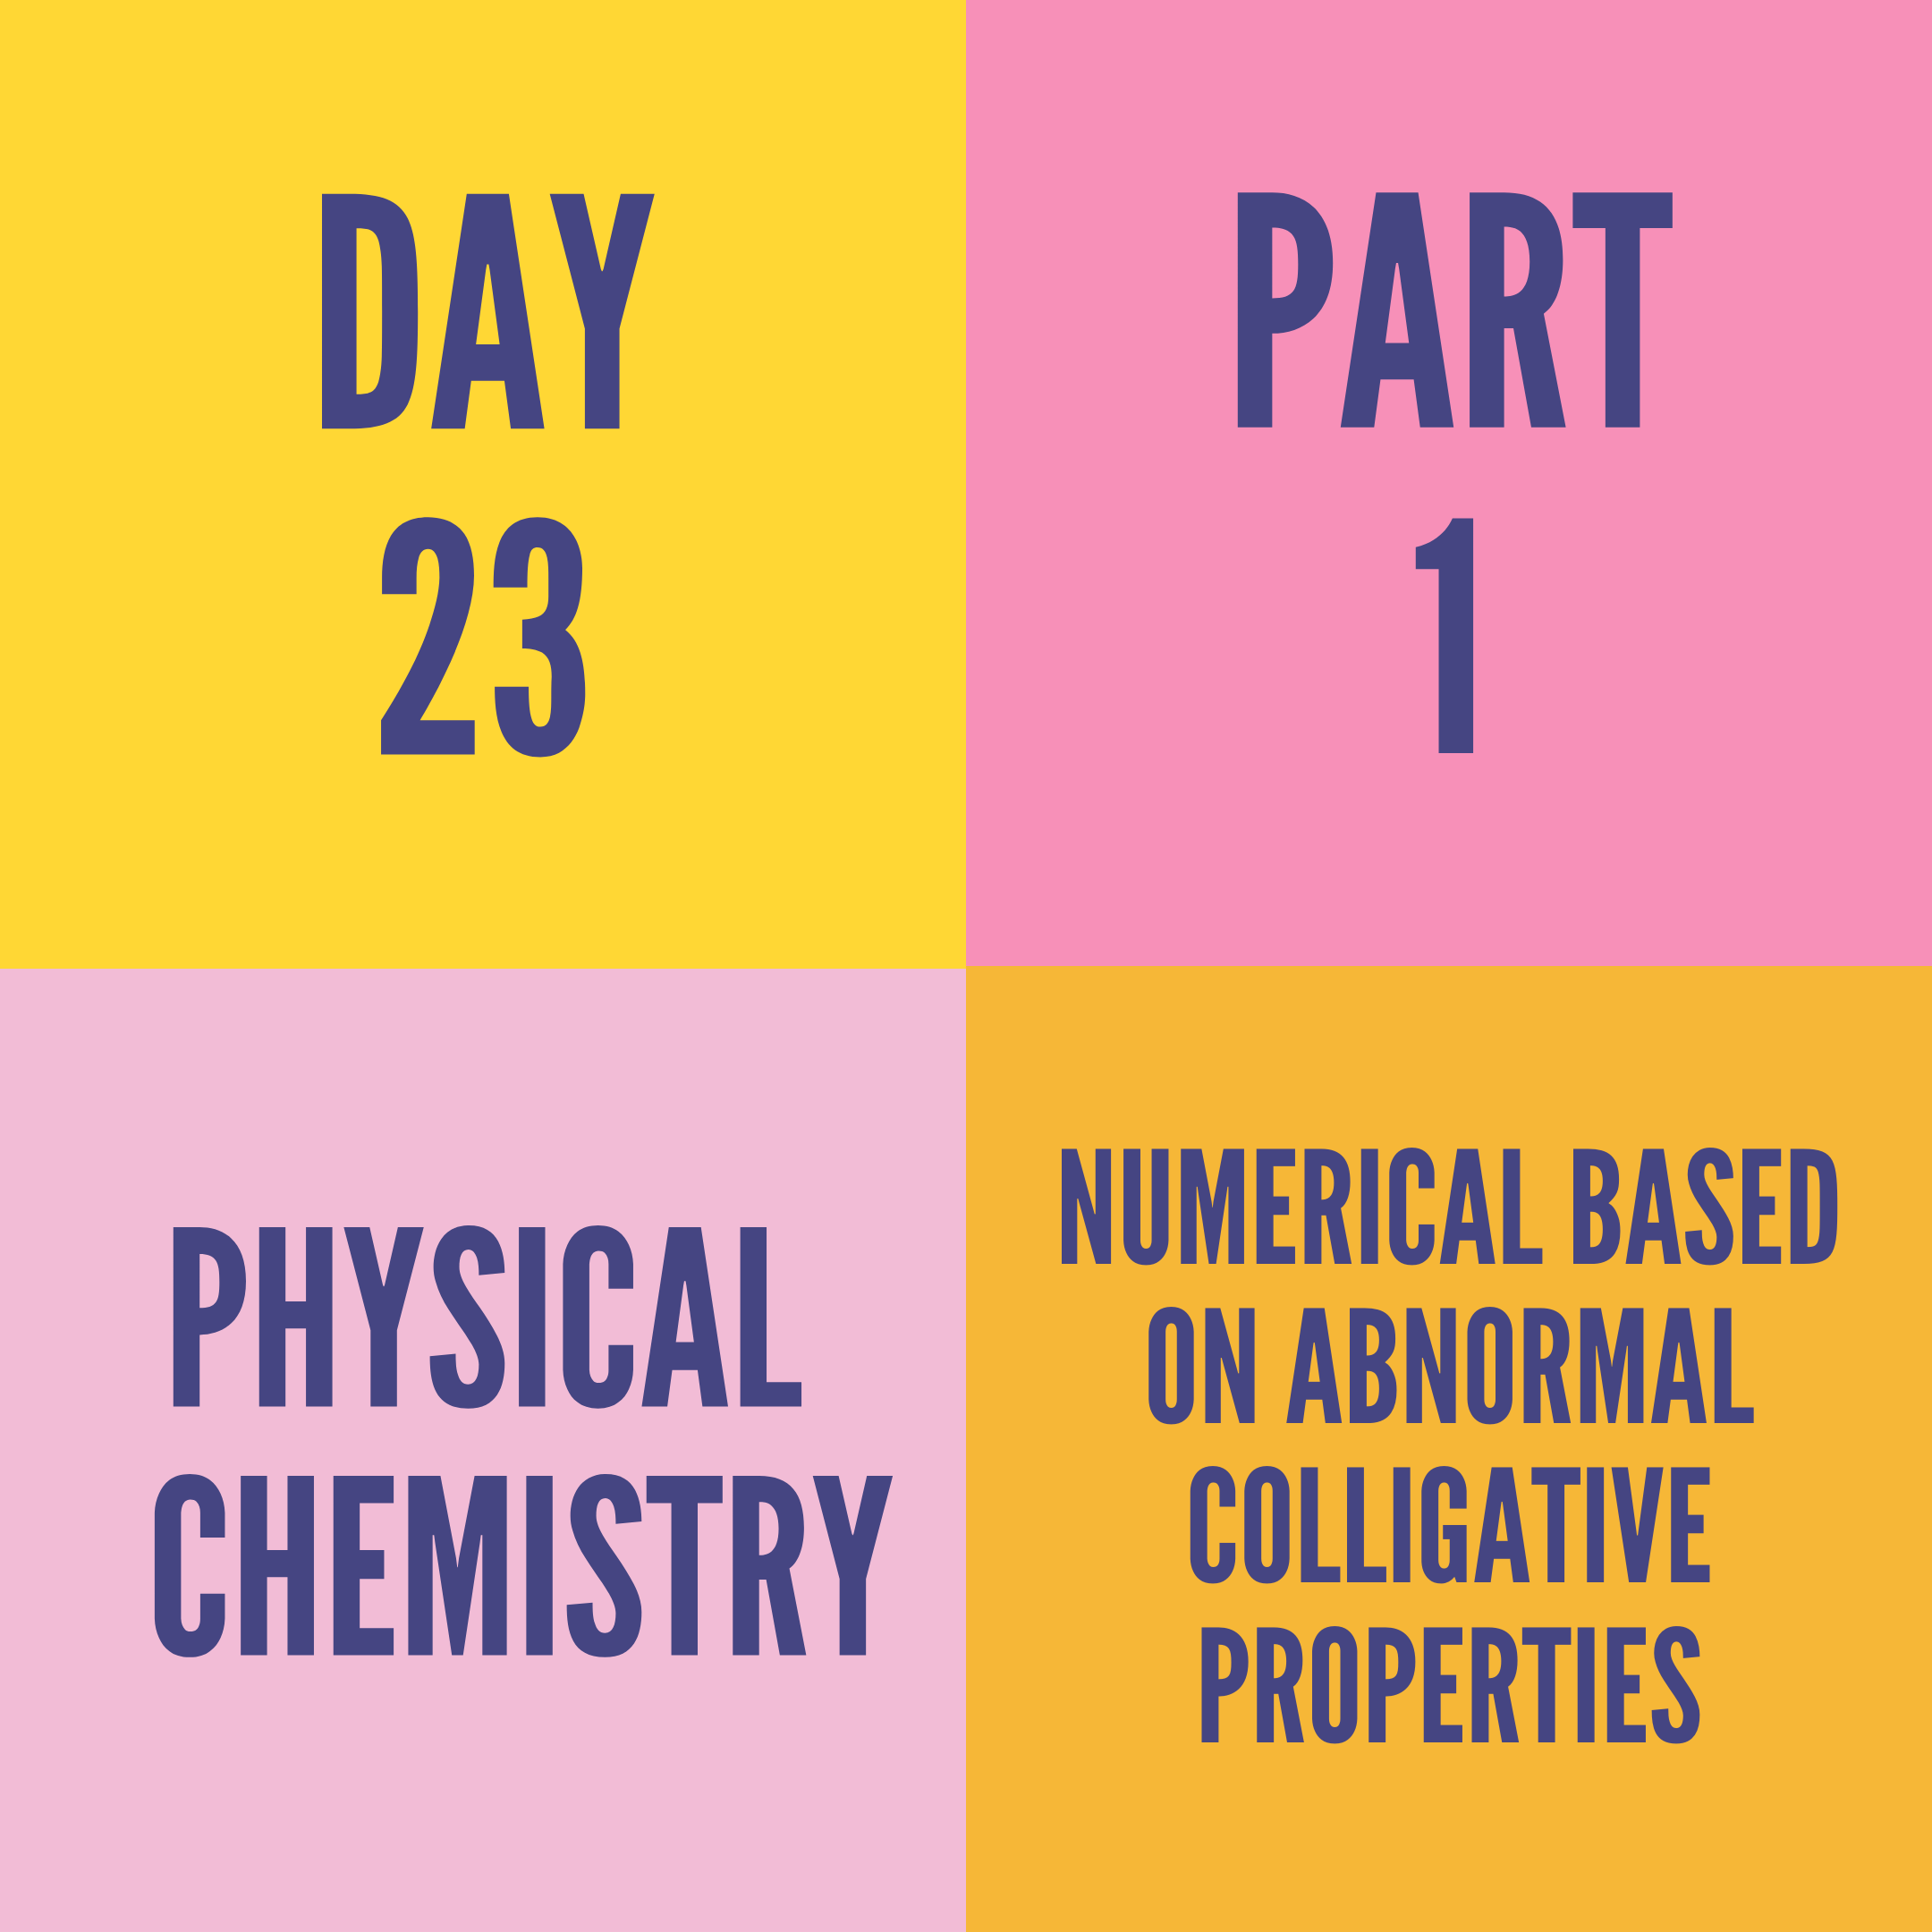 DAY-23 PART-1 NUMERICAL BASED ON ABNORMAL COLLIGATIVE PROPERTIES